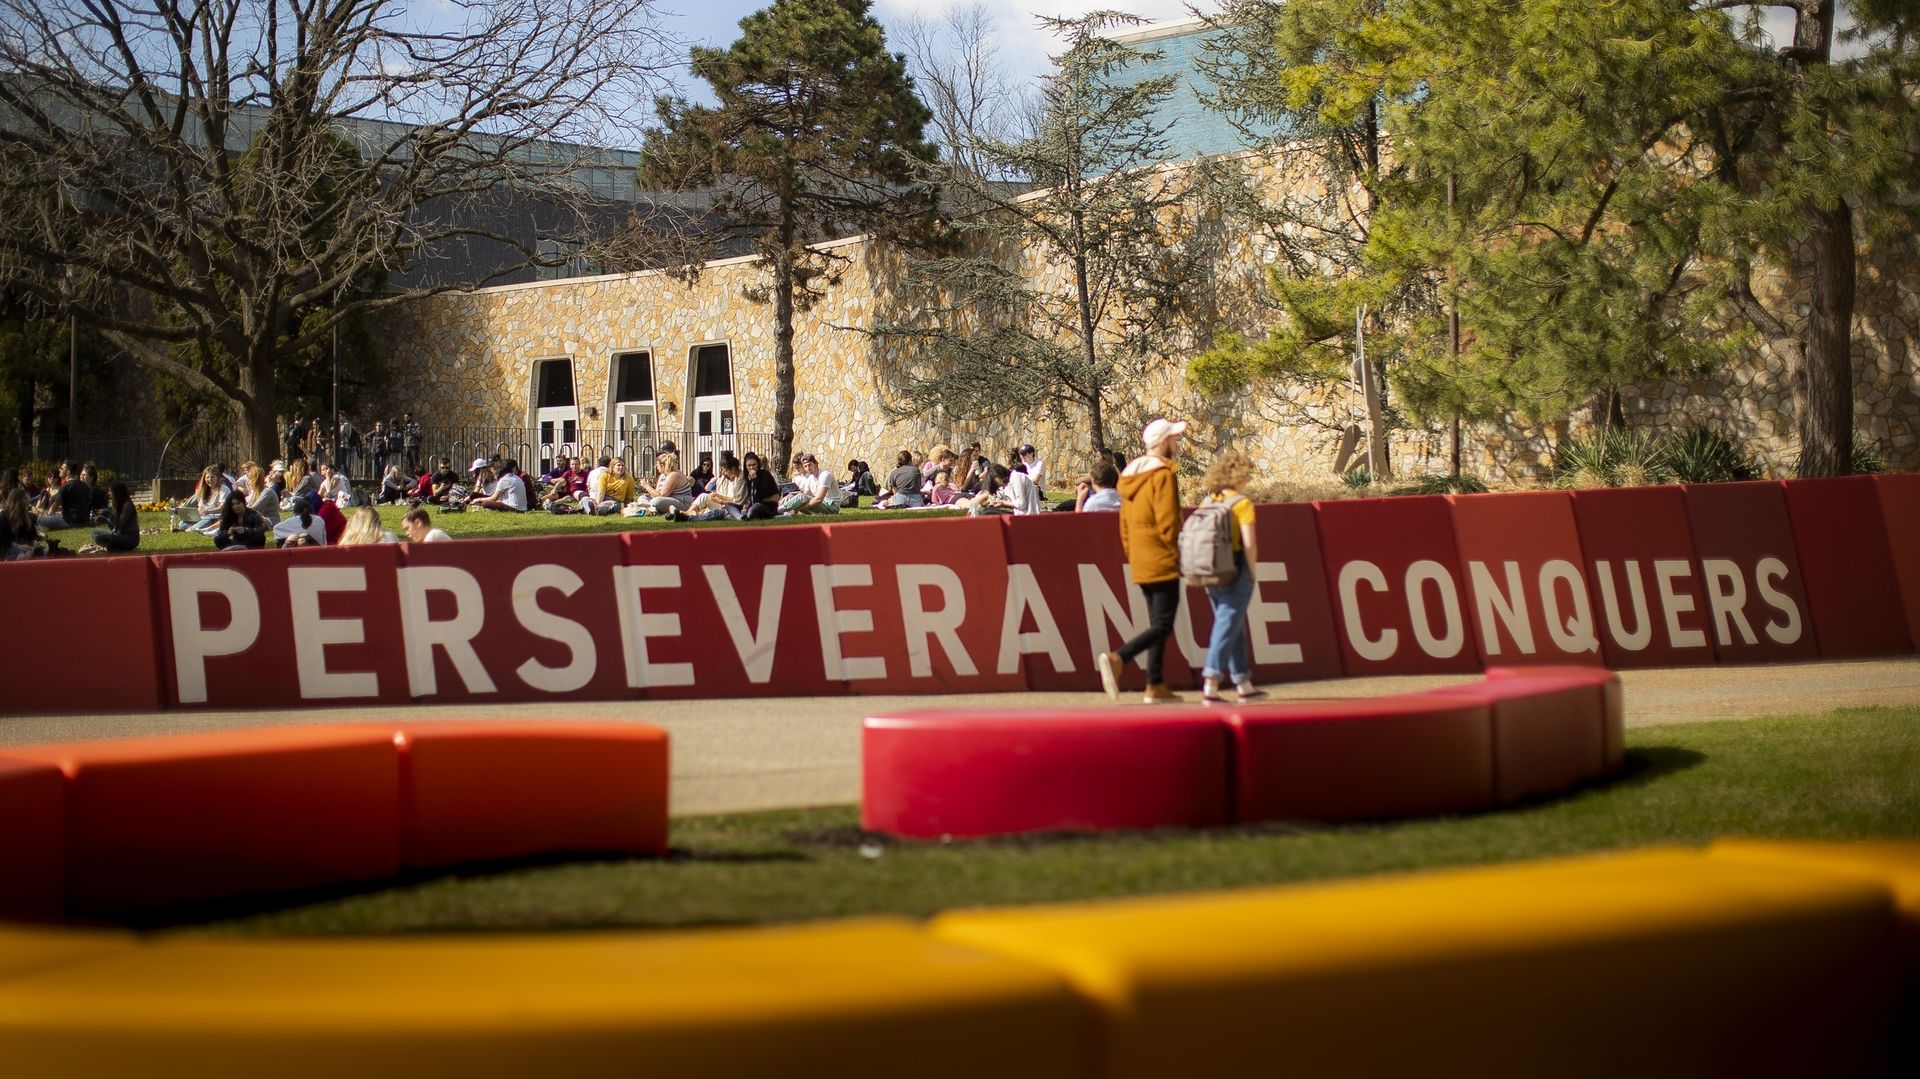 Perseverance conquers wall on campus